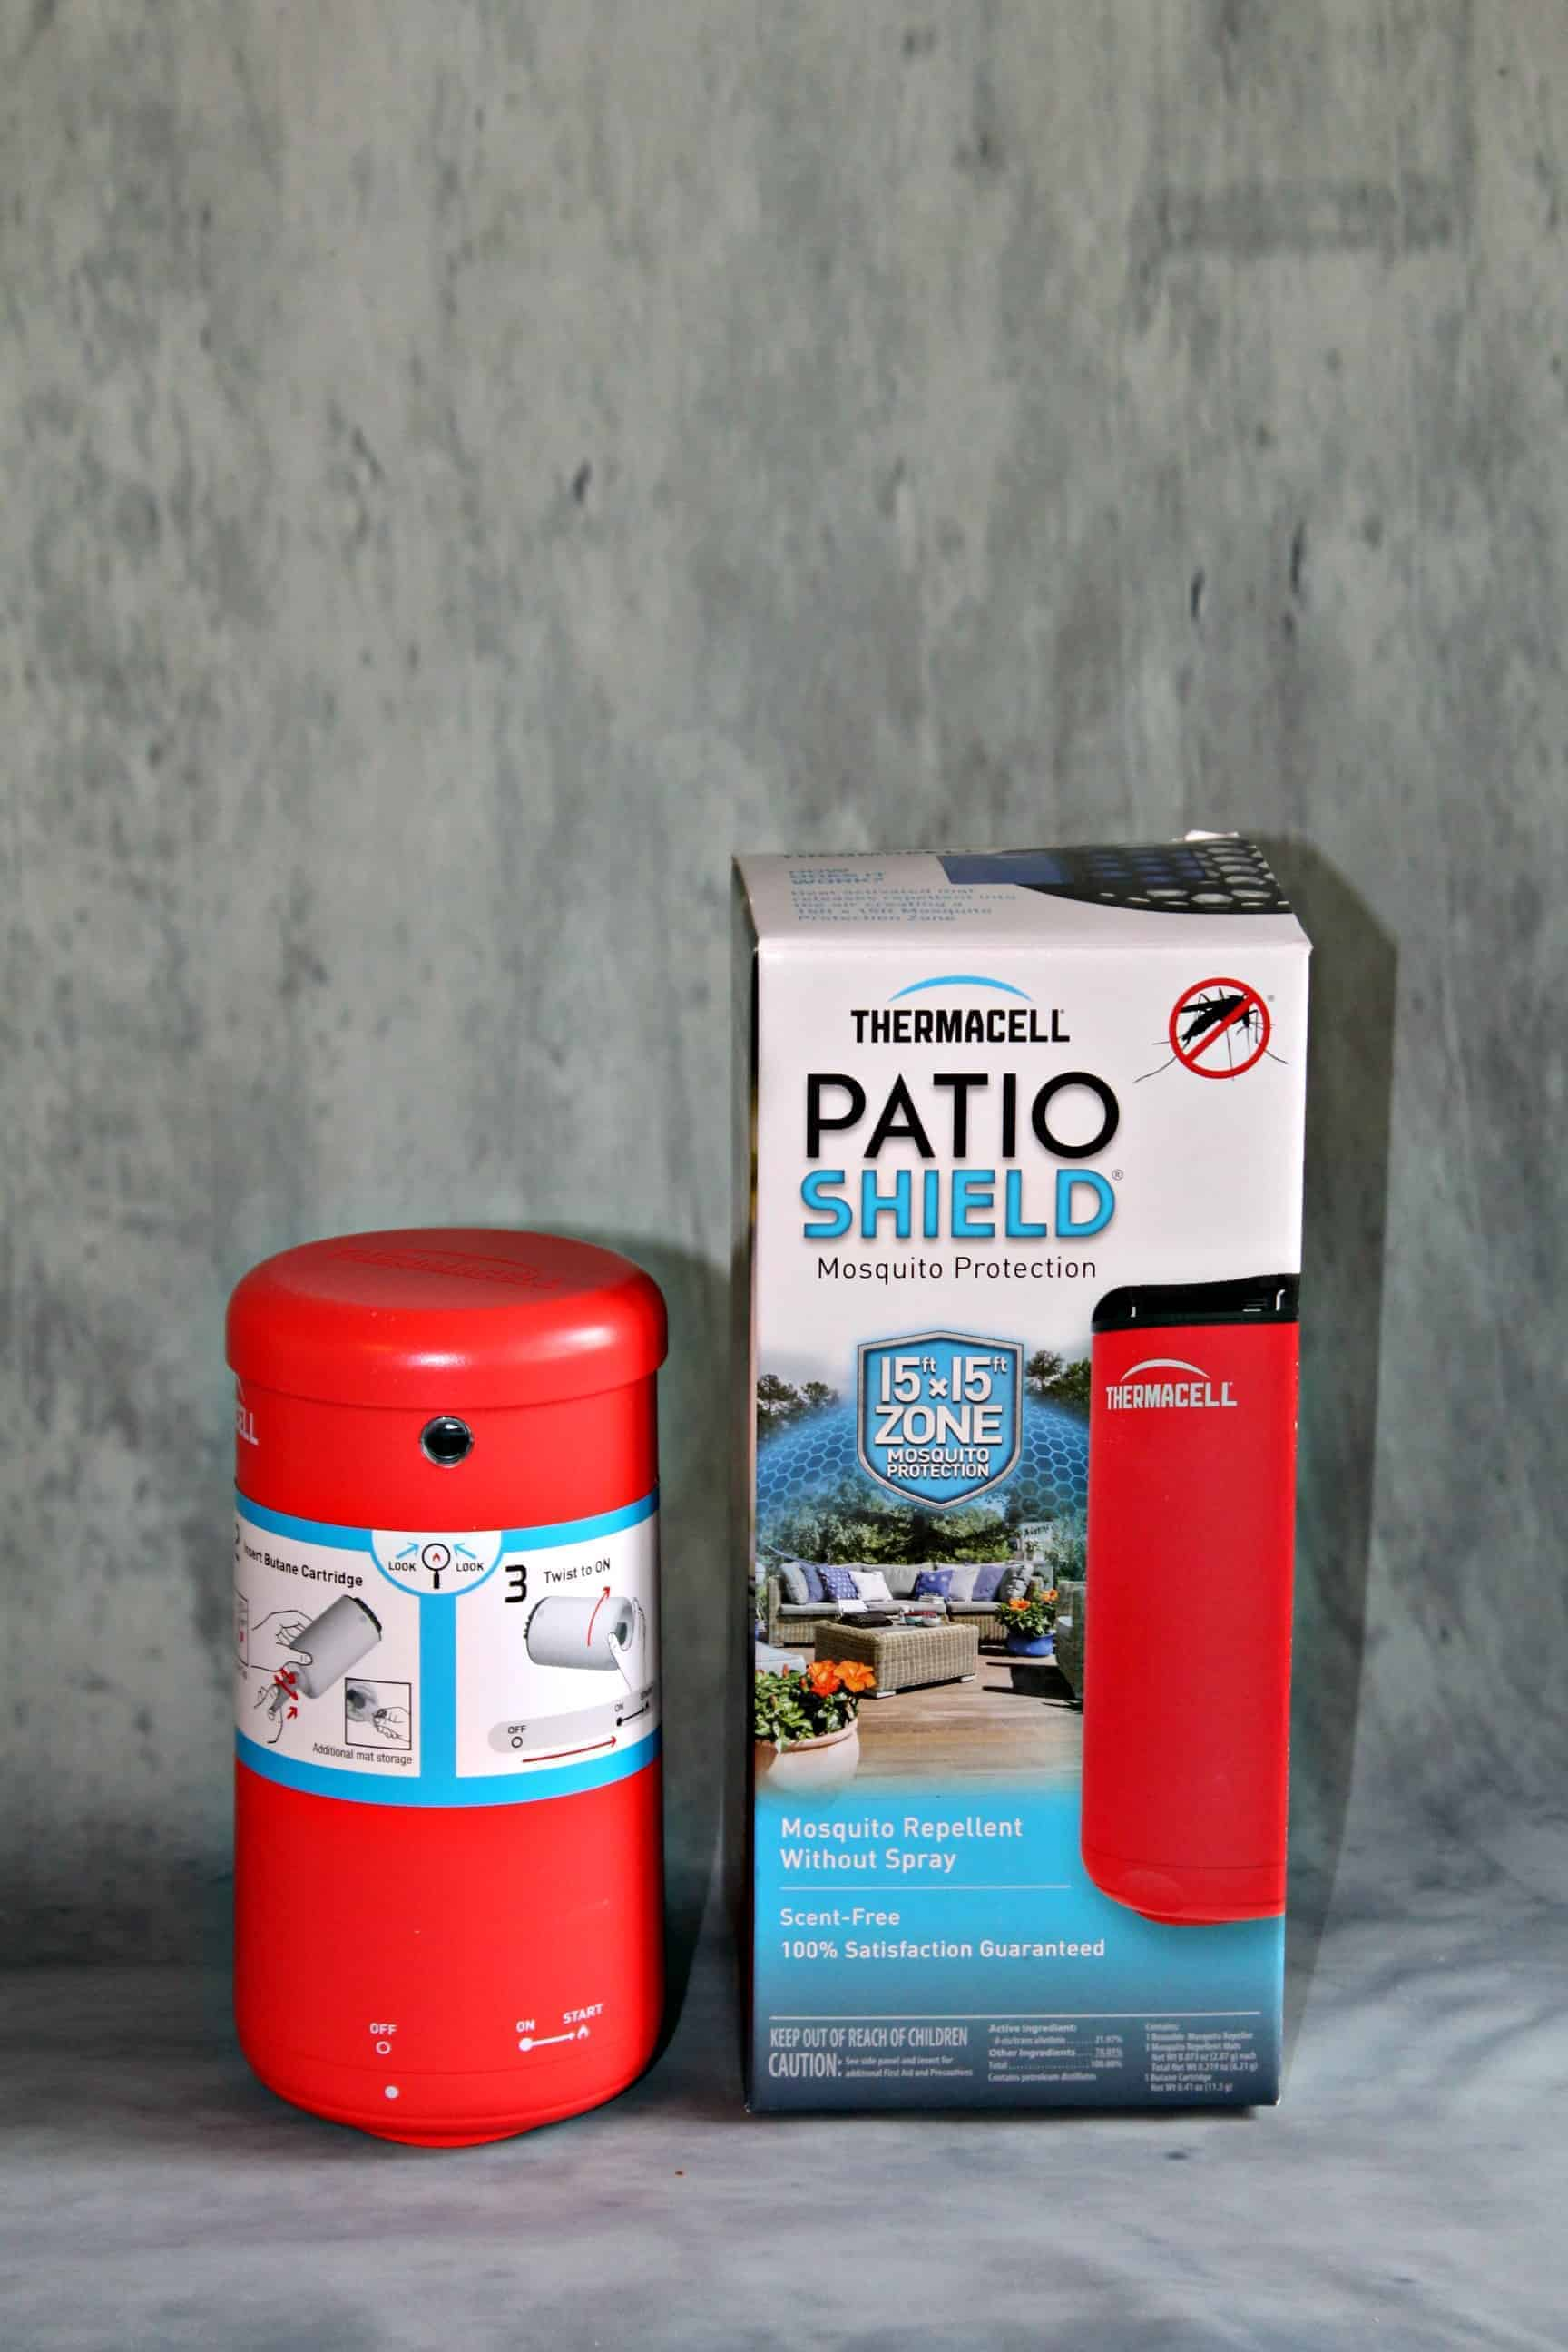 Patio Shield